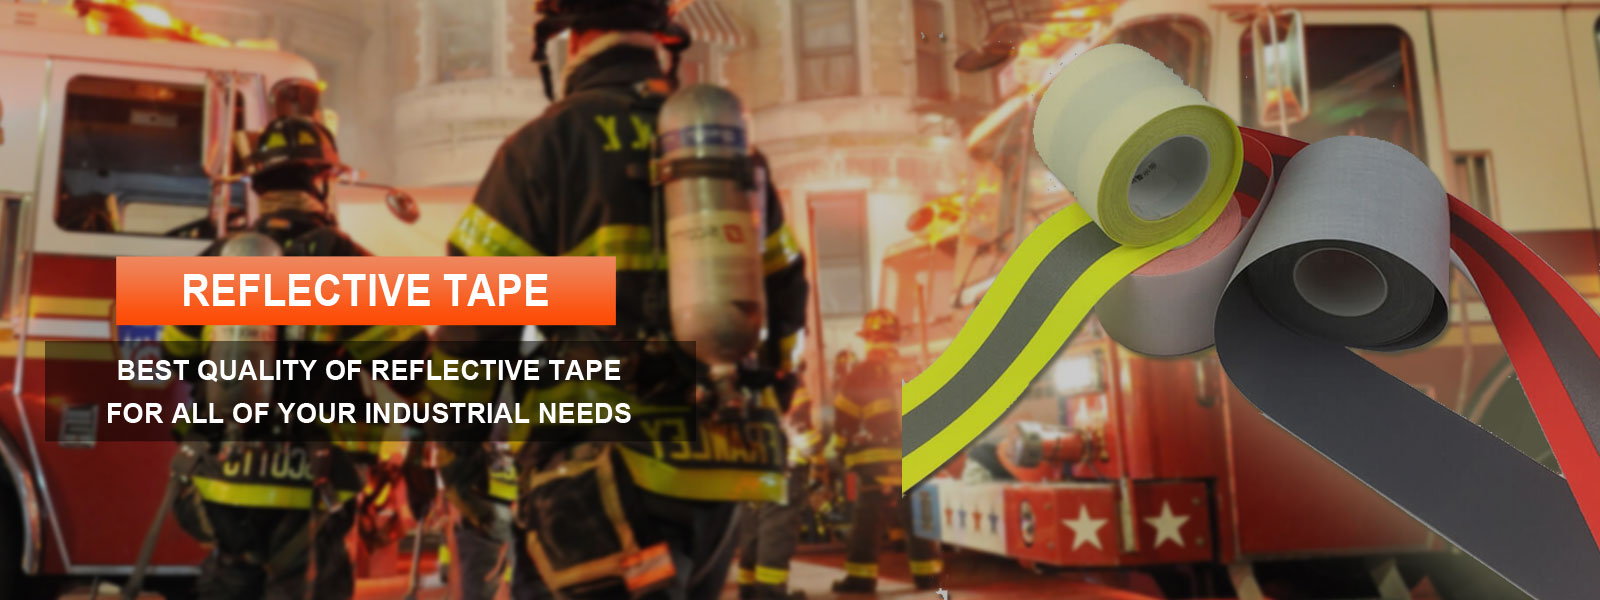 Reflective Tape Manufacturers in Goa